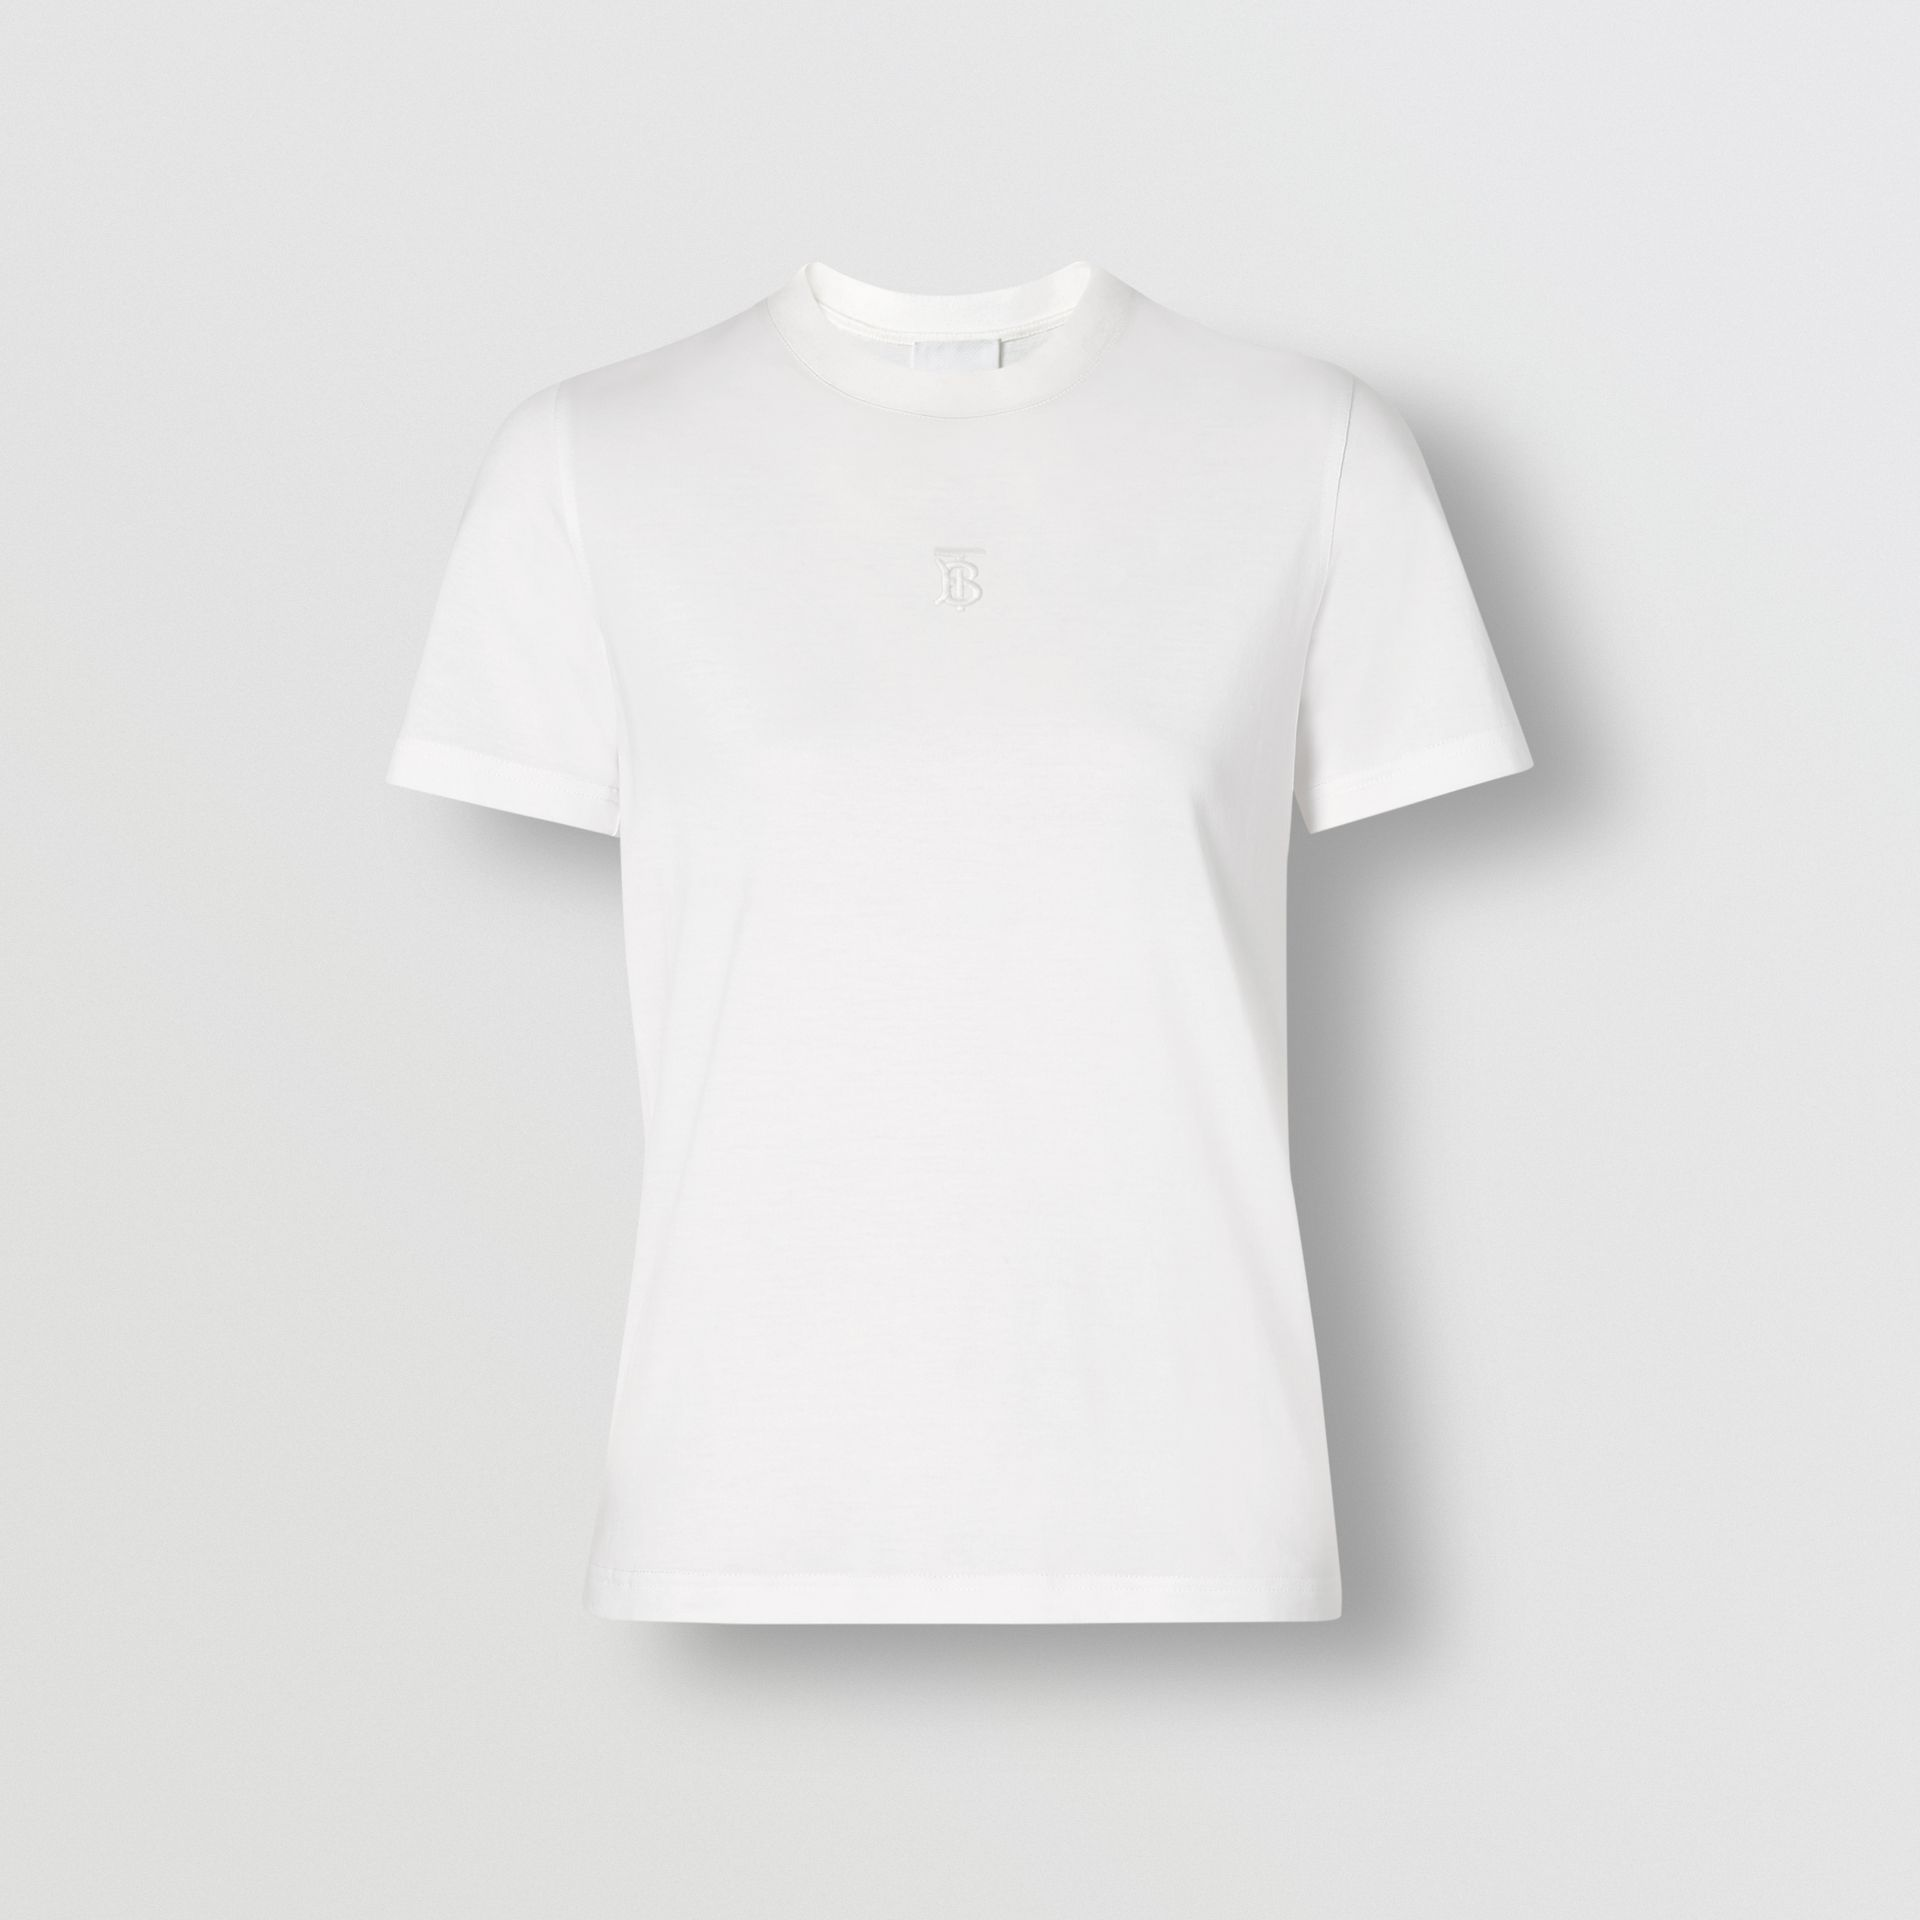 Monogram Motif Cotton T-shirt in White - Women | Burberry Australia - gallery image 3